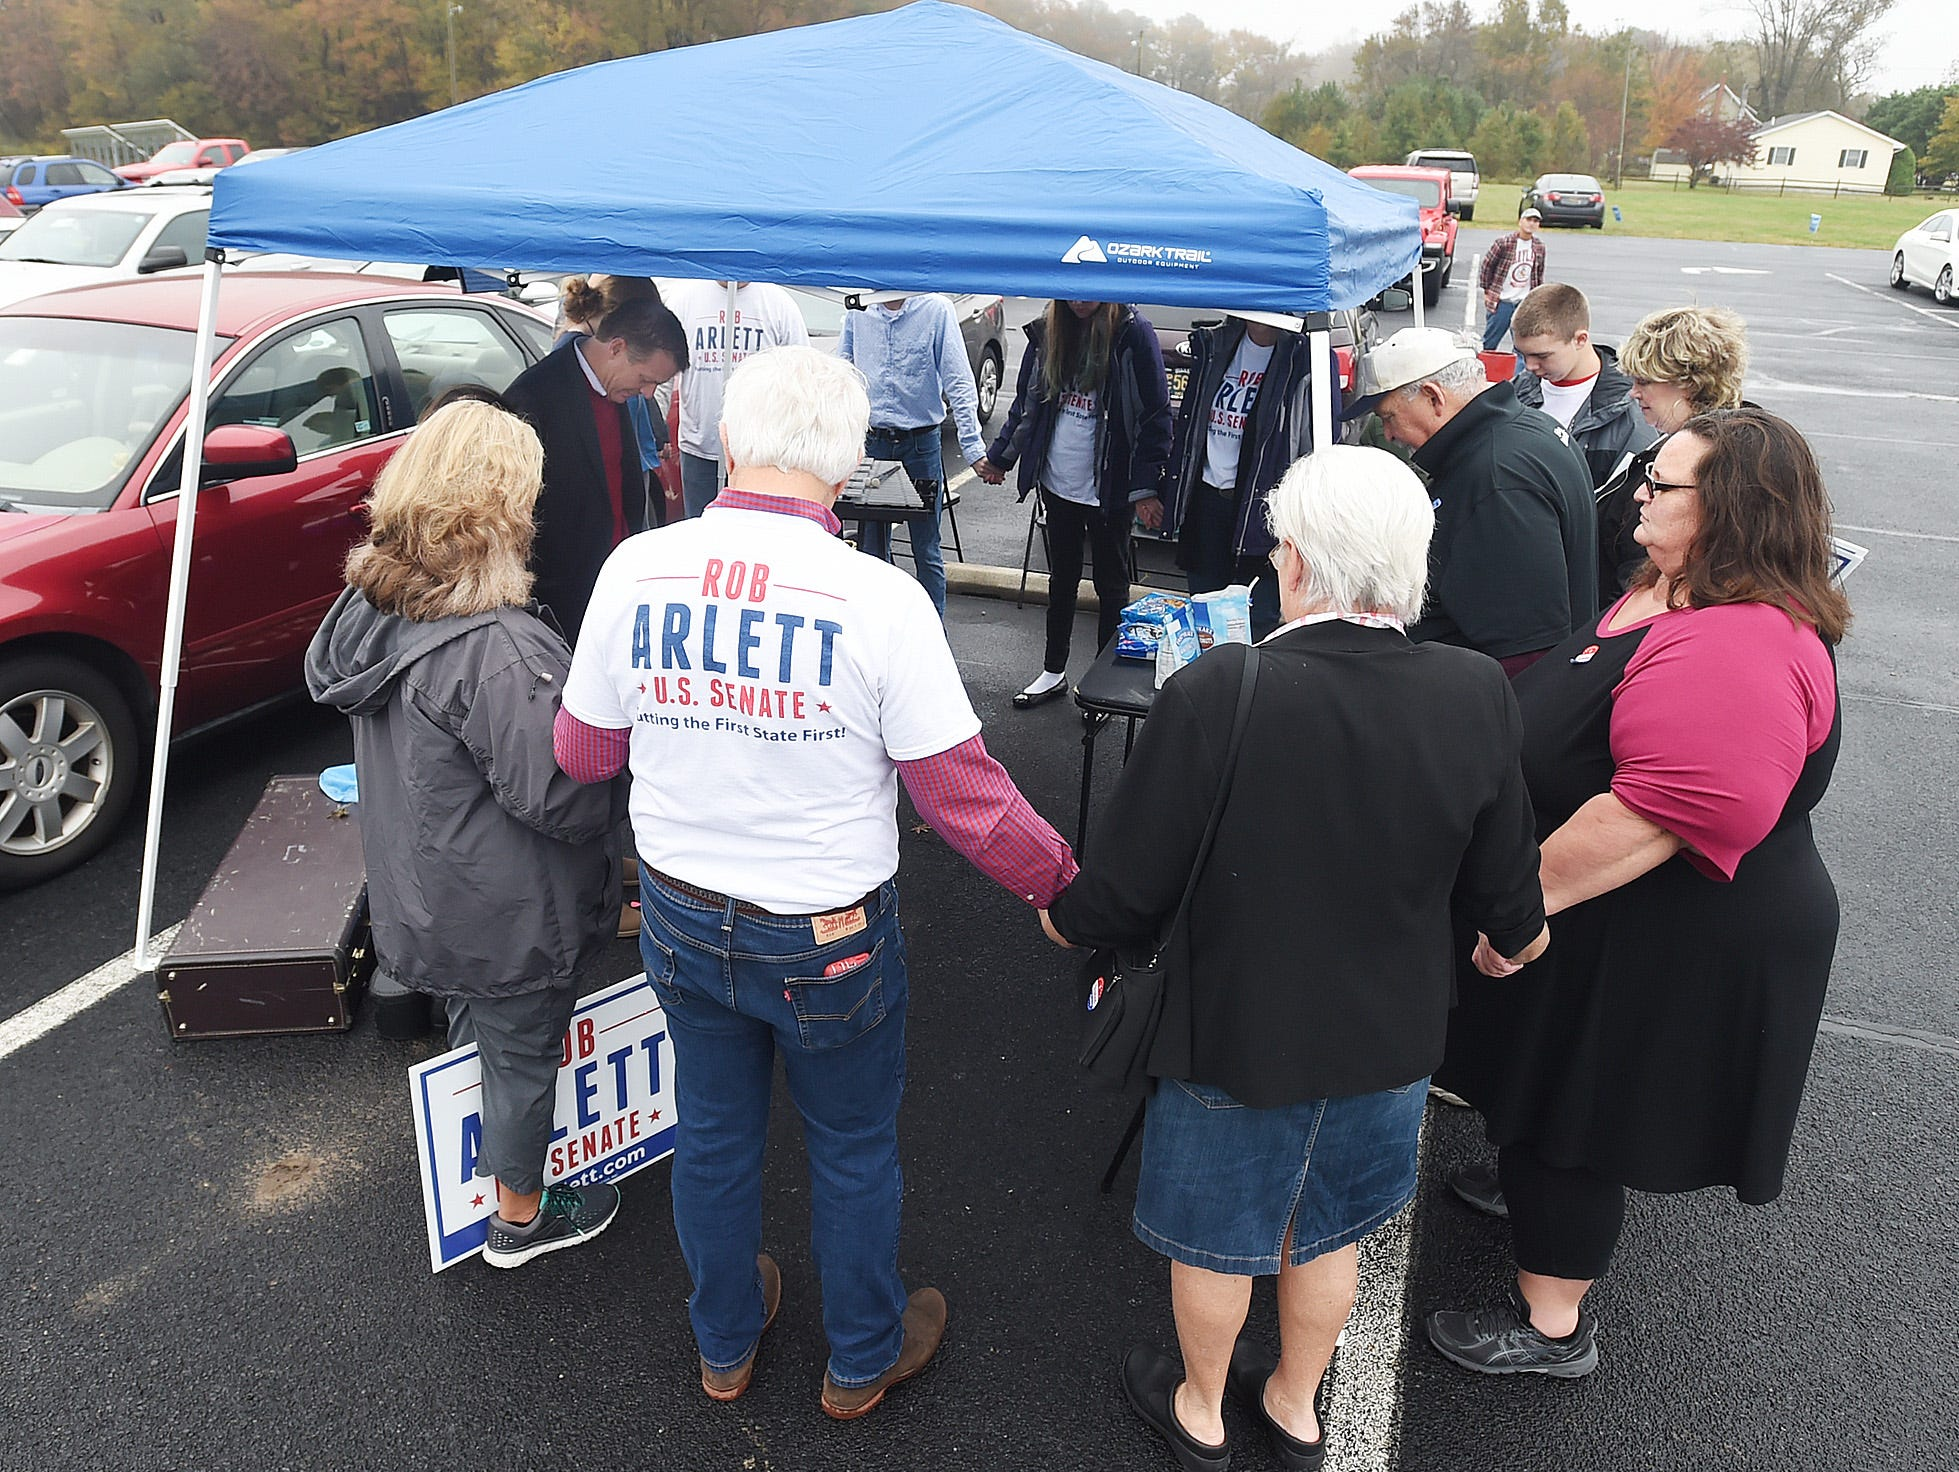 U.S. Senate Candidate Rob Arlett and supporters hold a prayer prior to voting at the Roxana Fire Station as voter turnout in eastern Sussex County has been steady at polling places in Rehoboth, Roxana, and Angola as candidates still greet supporters for their support.